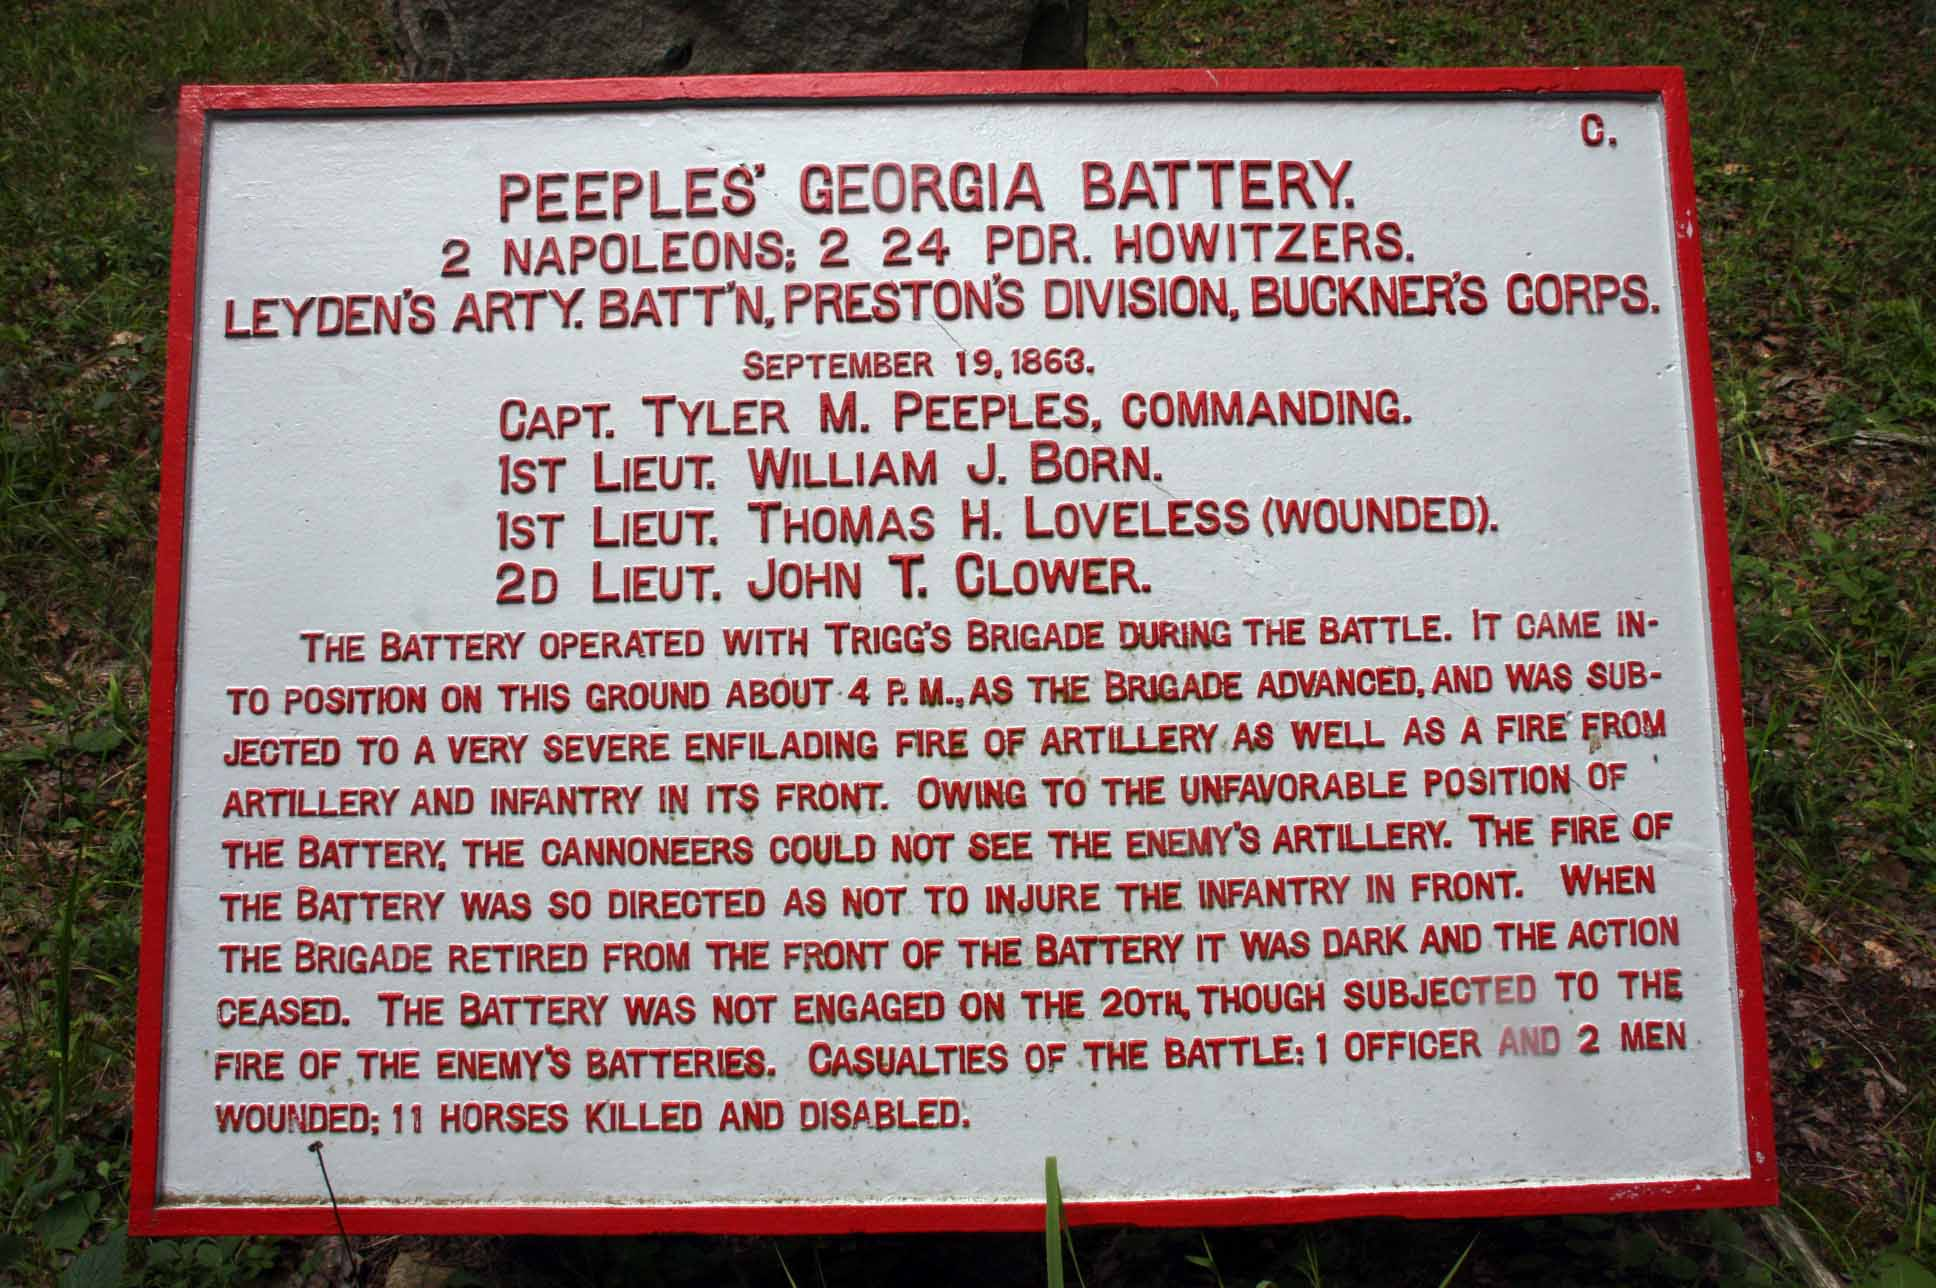 Peeples' Georgia Battery Tablet, click photo to enlarge.